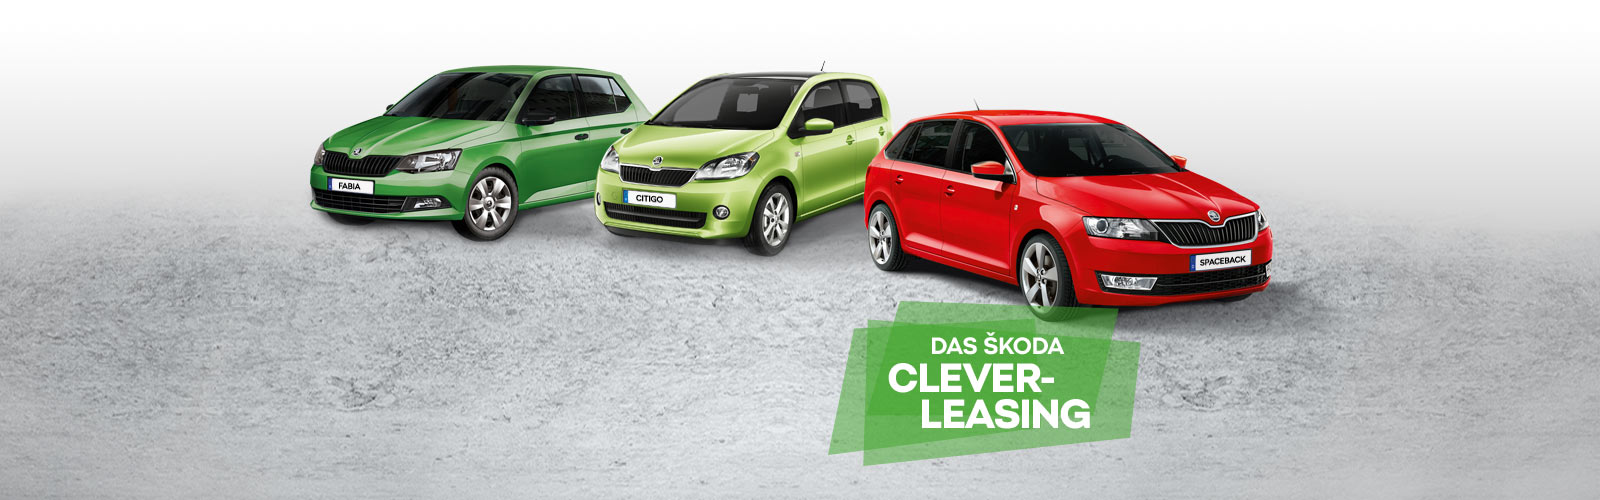 cleverleasing Skodanews Background